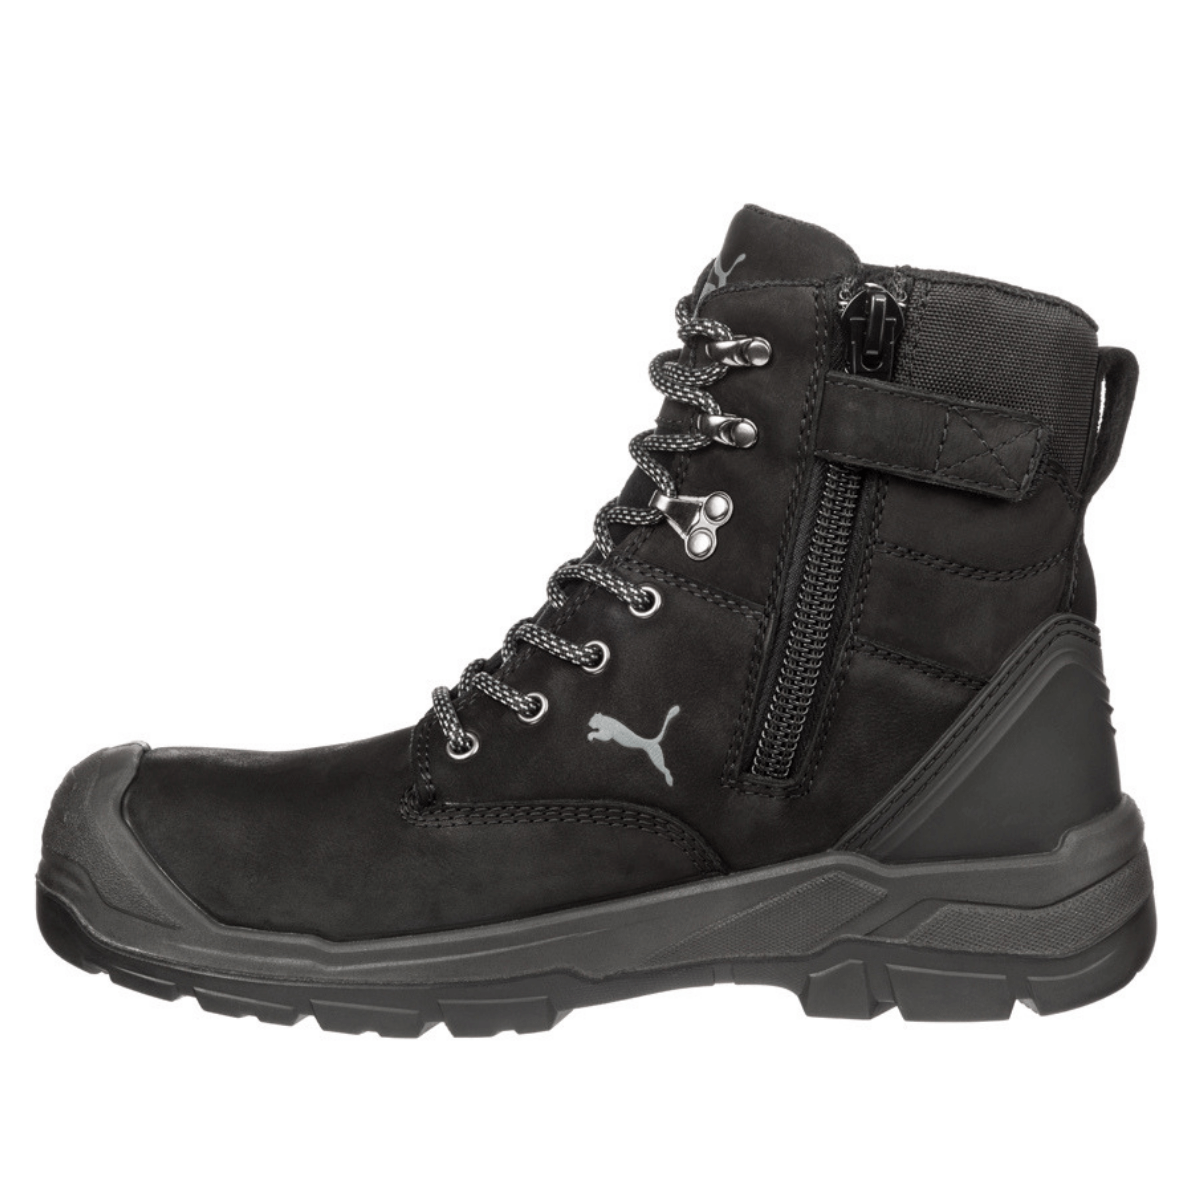 Puma Conquest Waterproof Safety Boot - Badger Australia 9abf8edc1